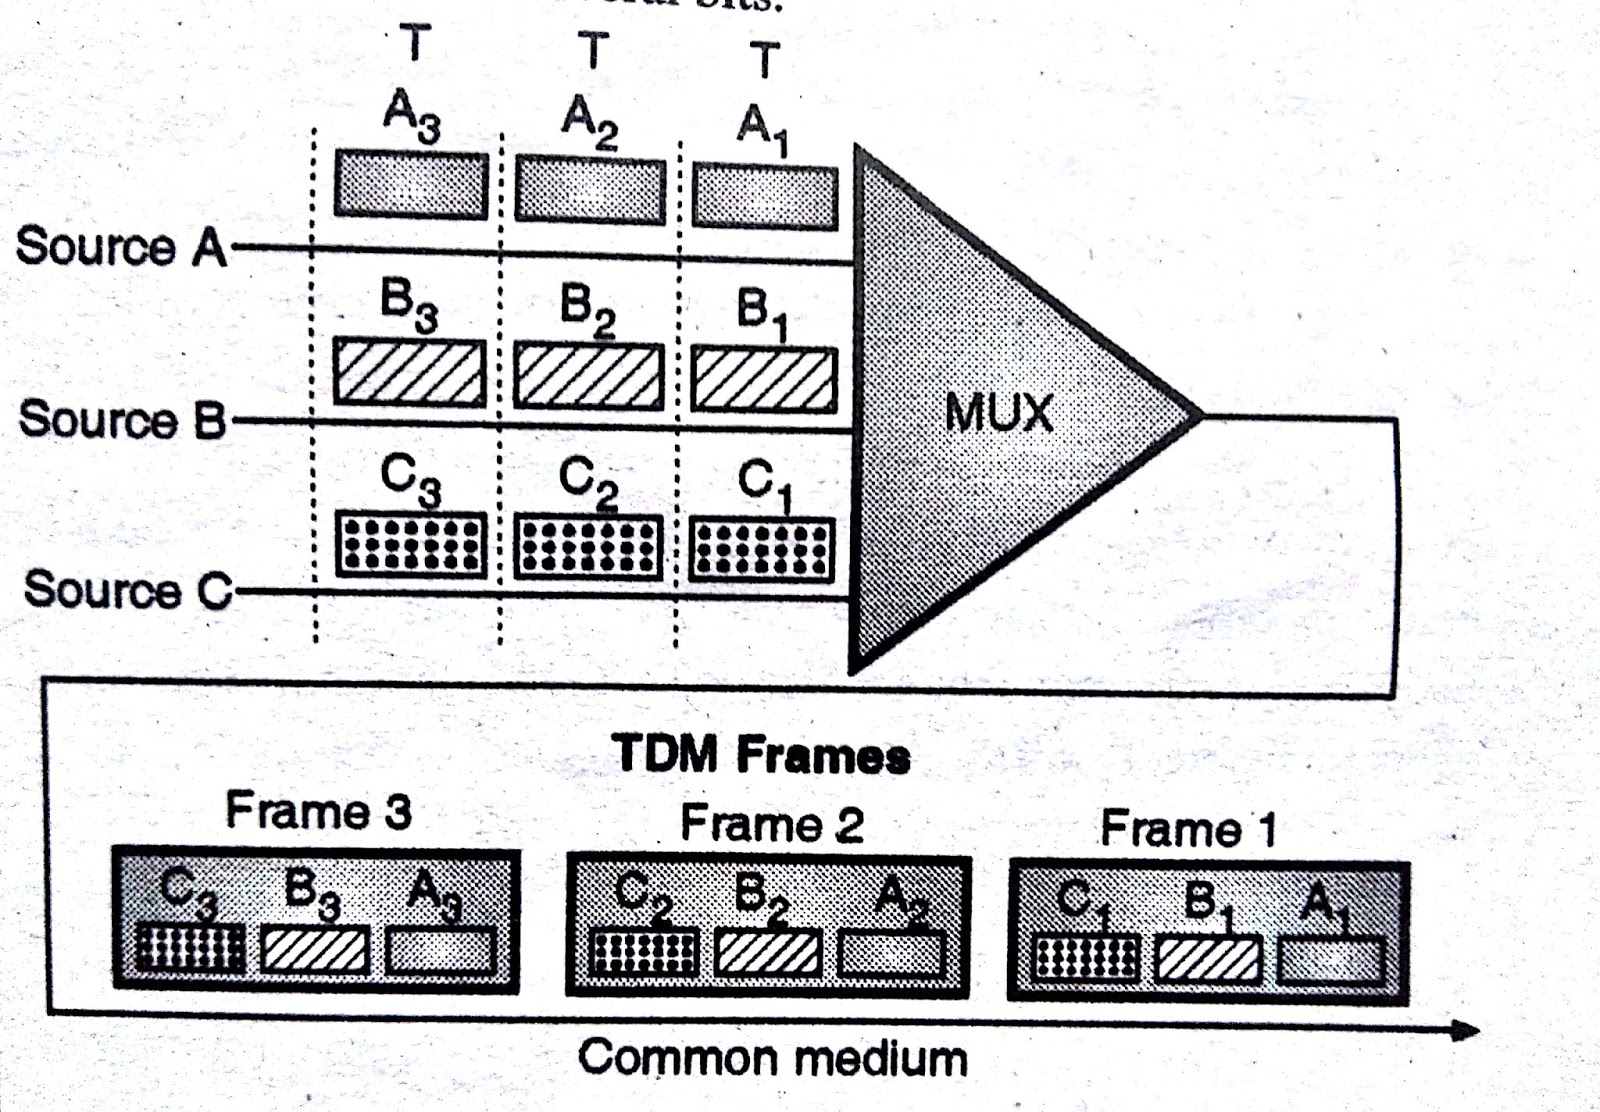 Time Division Multiplexing (TDM) - STUDY FOR ENGINEERING